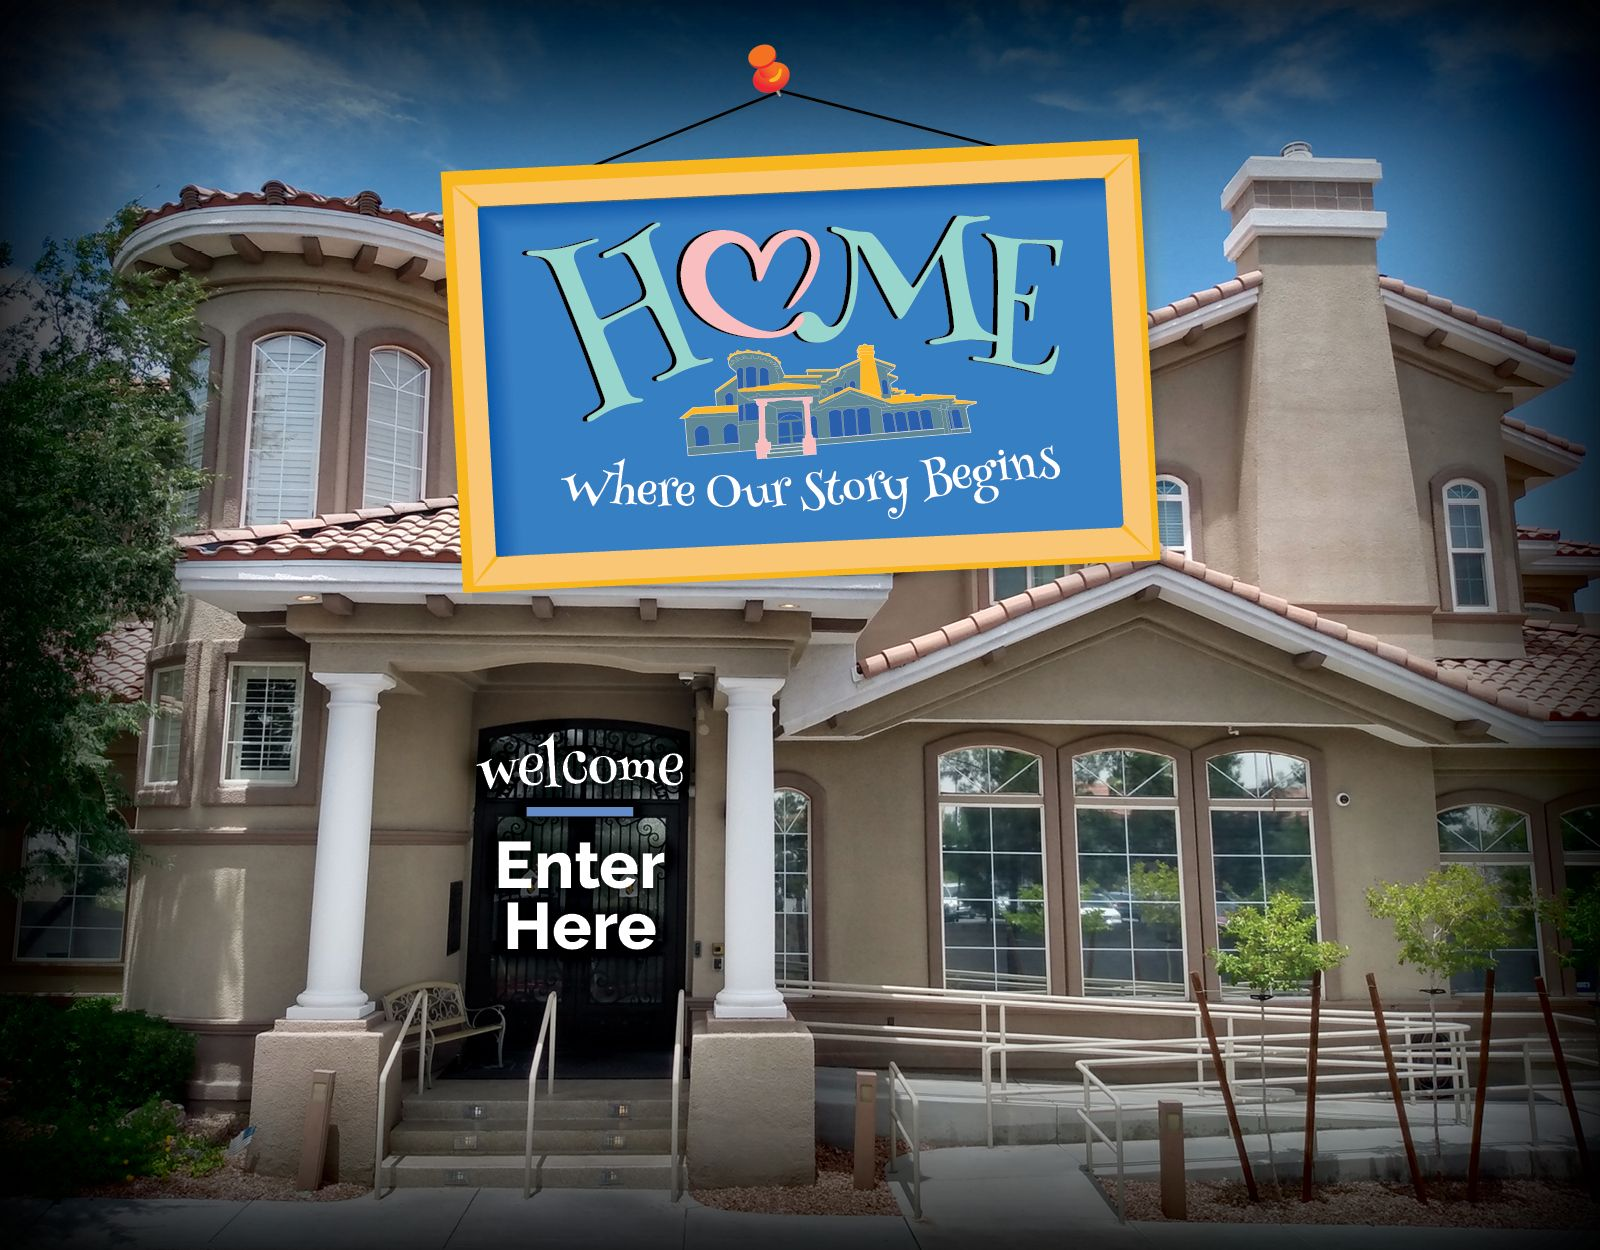 Home Where Our Story Begins: Welcome Enter Here